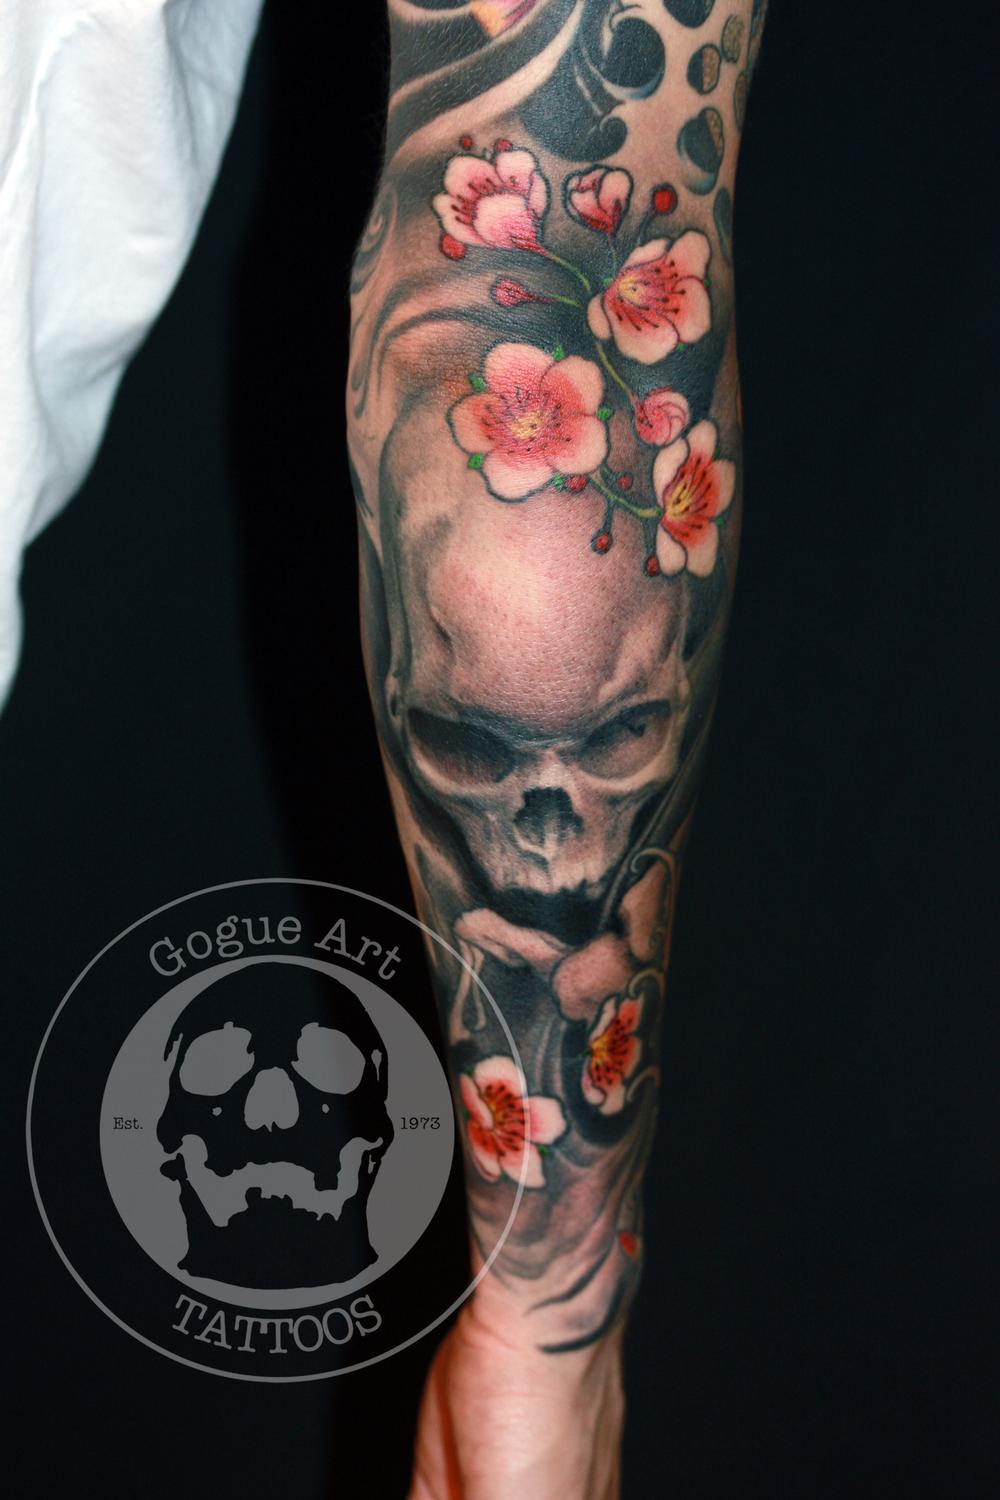 Cherry Blossom Tattoo Black And White: Off The Map Tattoo : Tattoos : Body Part Arm Sleeve